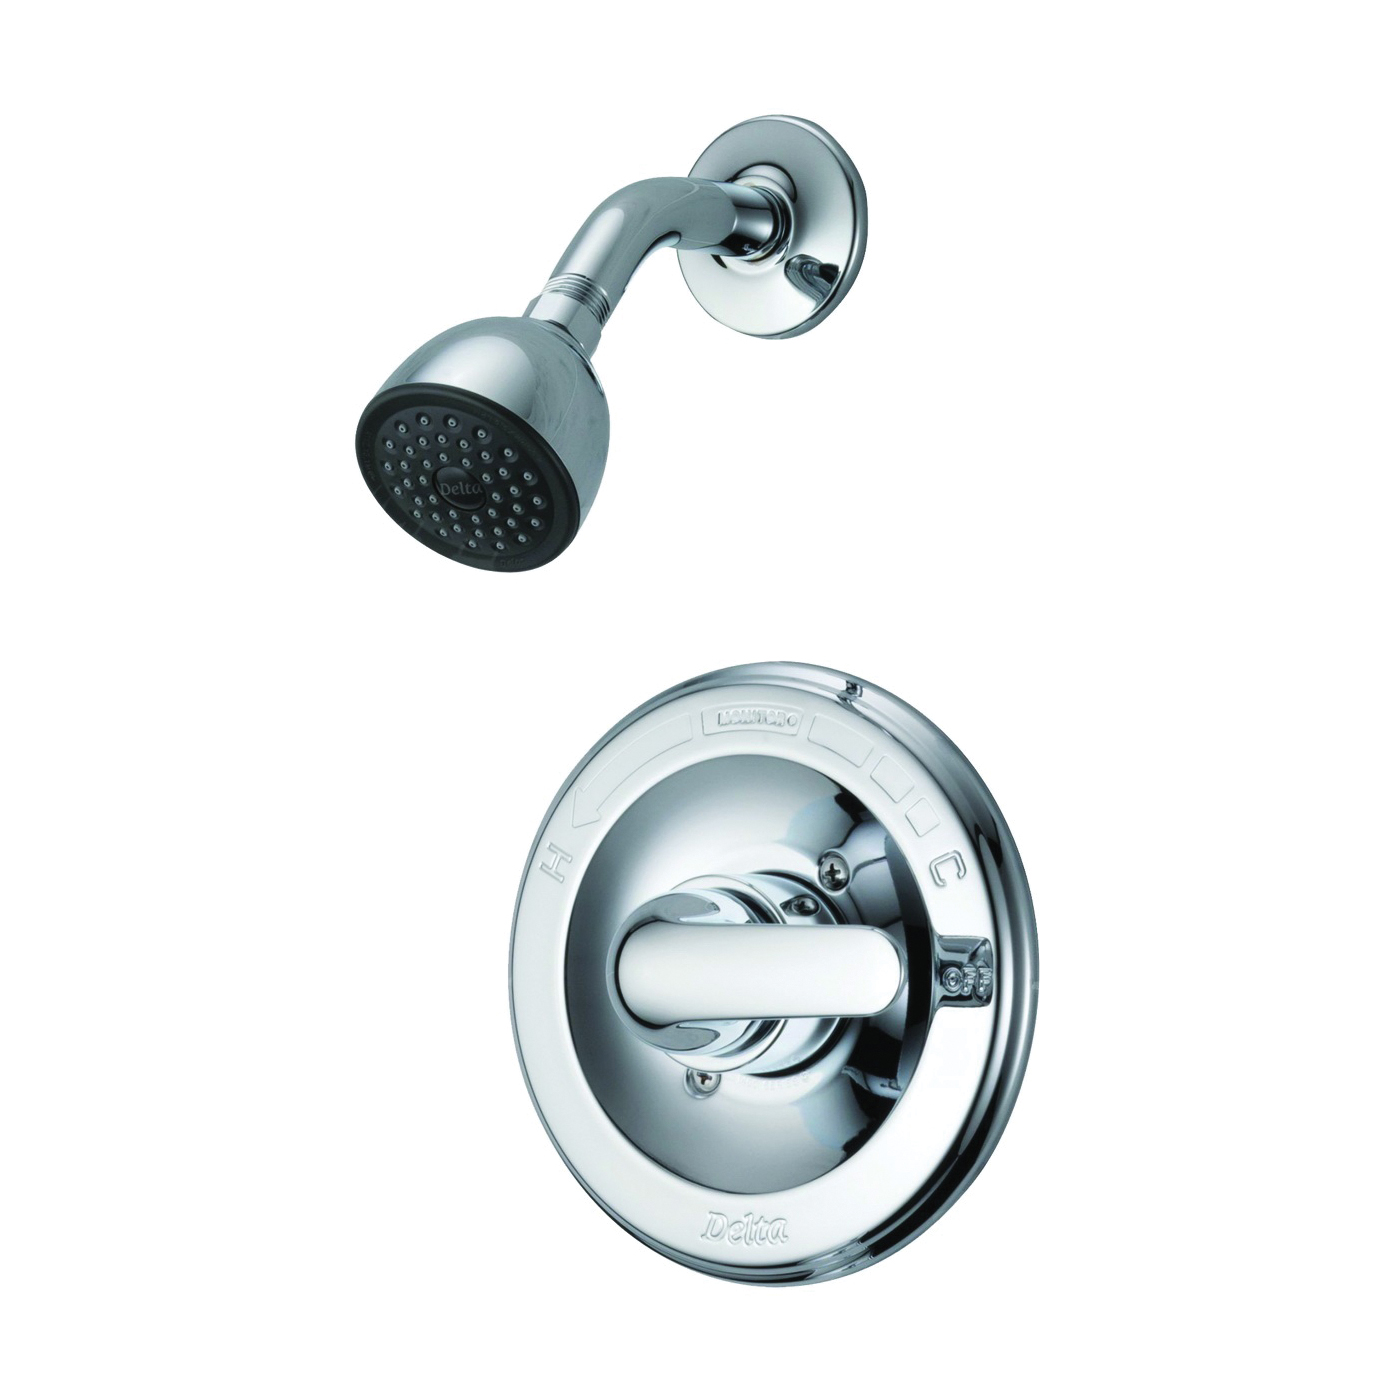 Picture of Peerless 132900 Shower Faucet, 2 gpm, 2-5/8 in Showerhead, Brass, Chrome, Lever Handle, 1-Handle